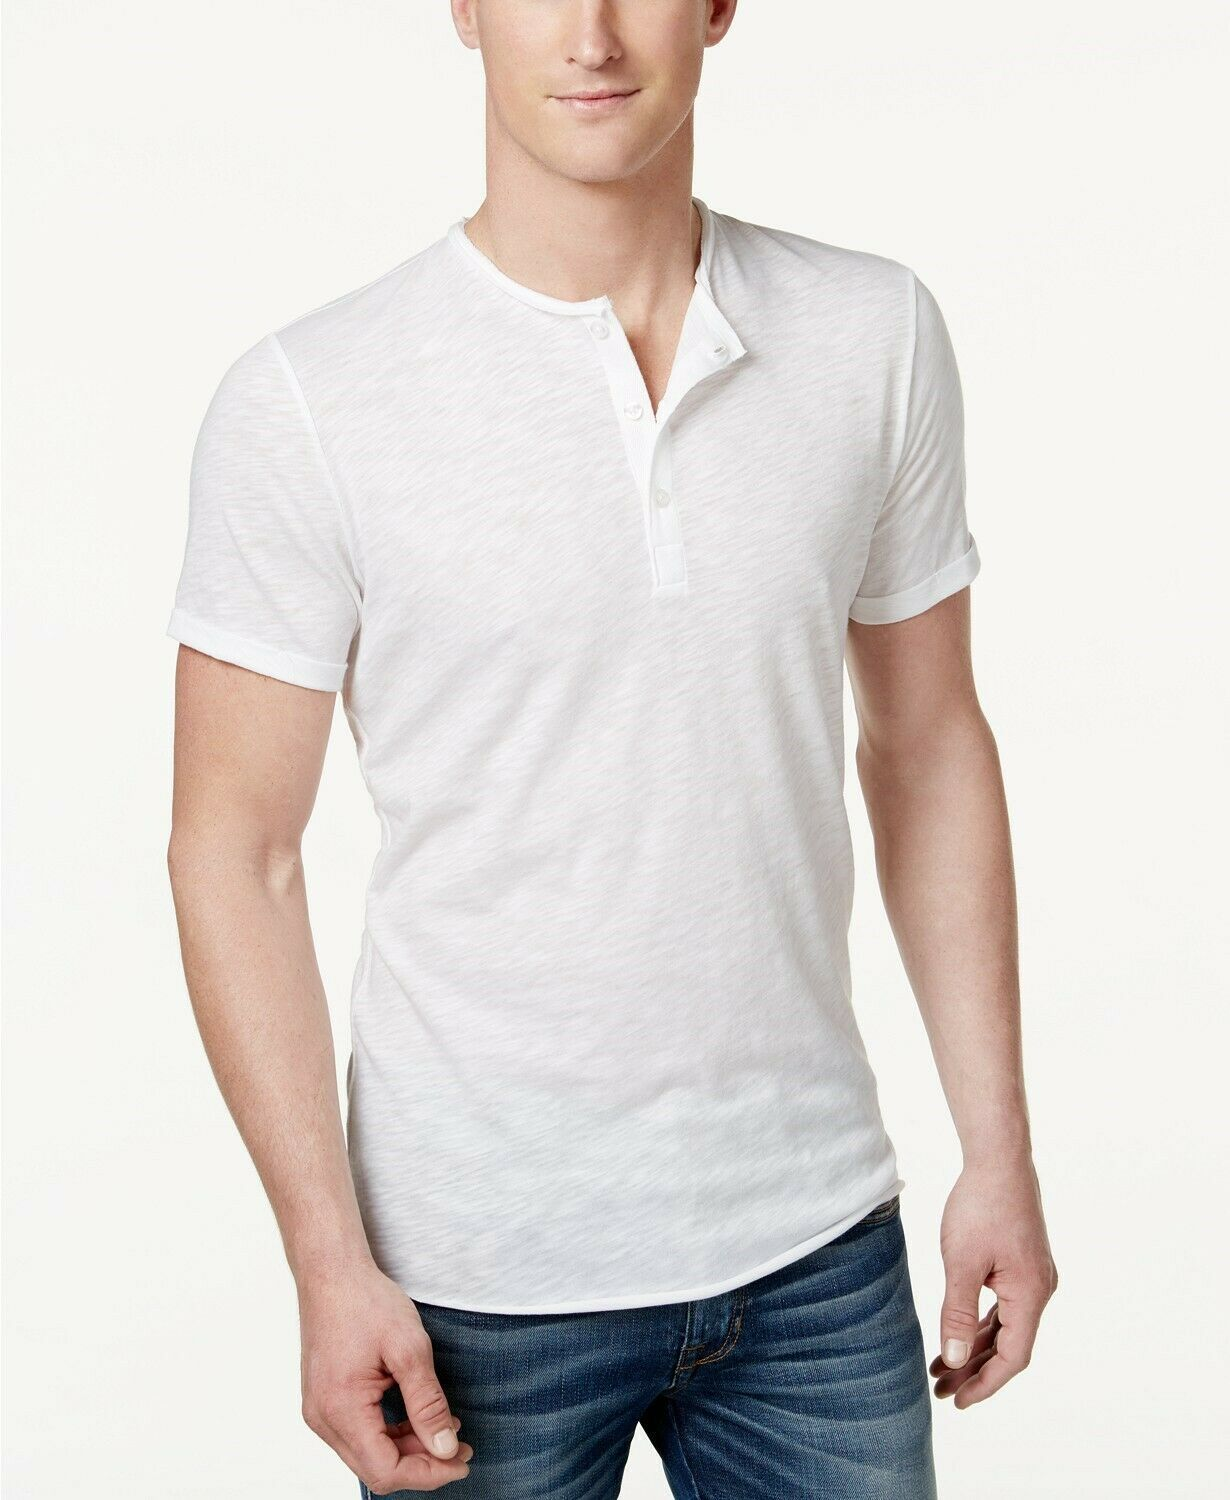 American Rag Mens Henley T Shirt Bright White Size Small - NWT